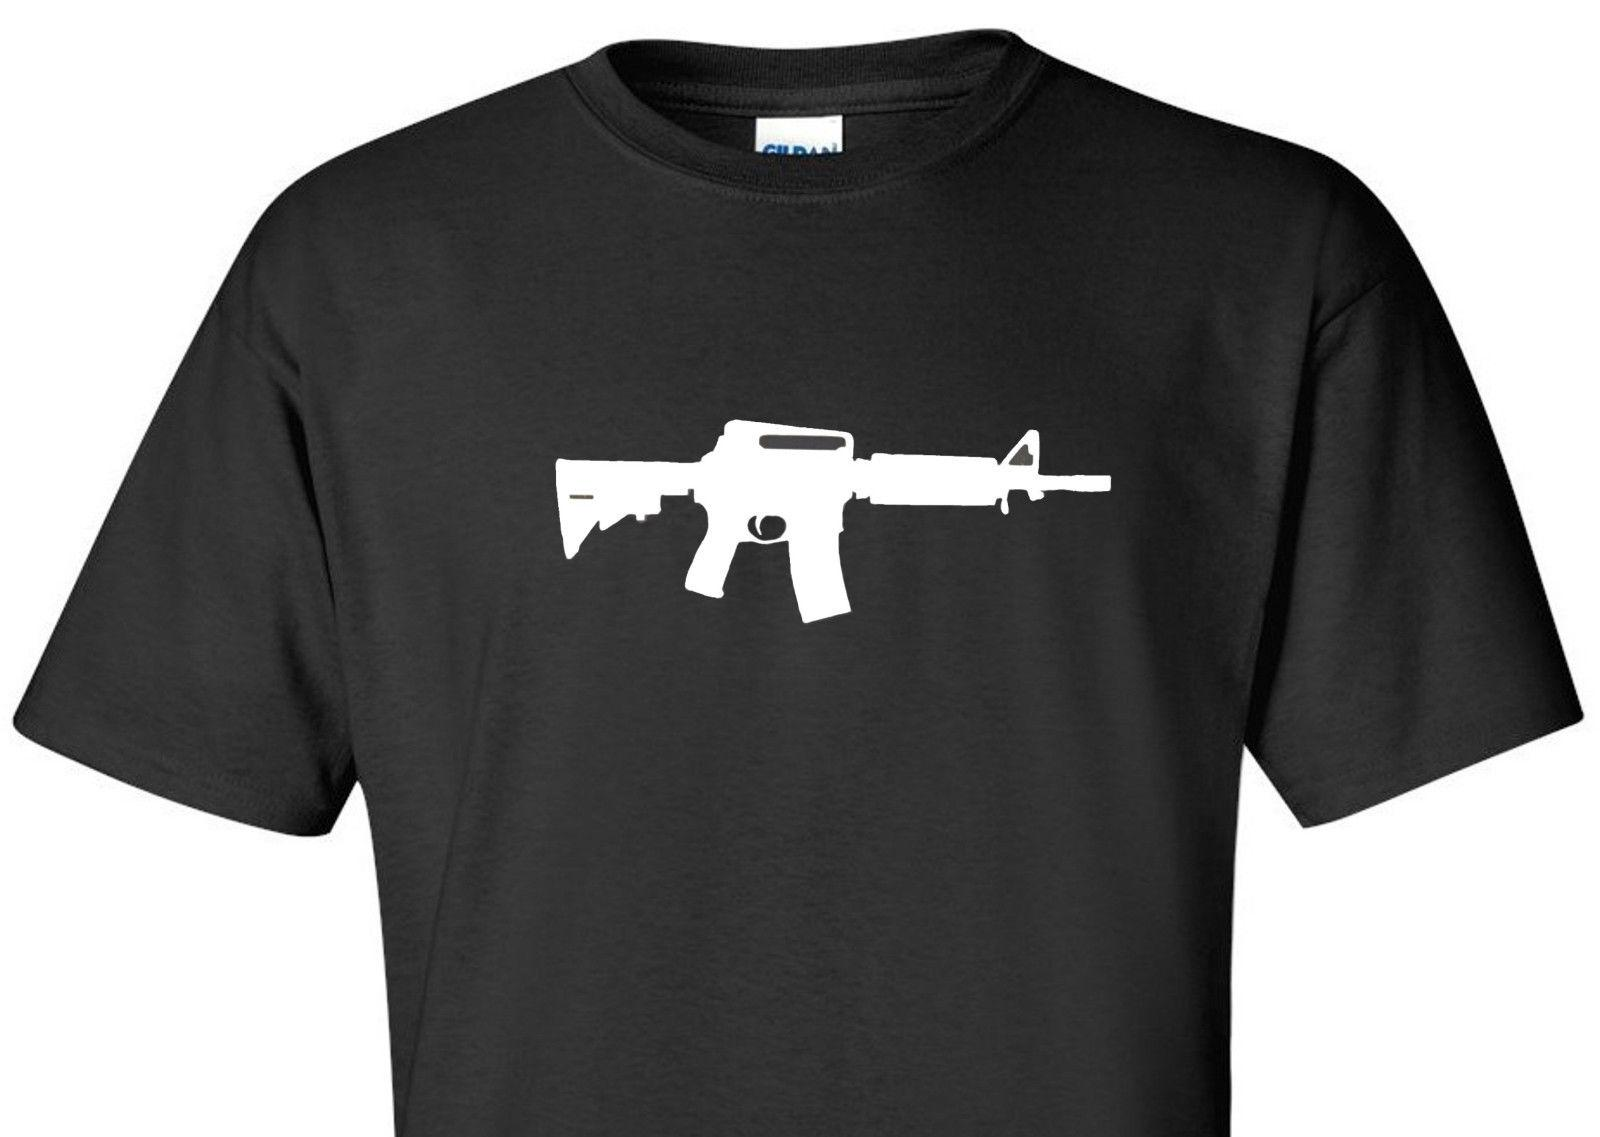 a7c0f8ff4 AR15 AR 15 T SHIRT Pro Gun Second 2nd Amendment Hunting Conservative Shirt  Funny Unisex Casual Tee Gift Silly Tee Shirts Tee Shirt Site From  Noveltgifts, ...